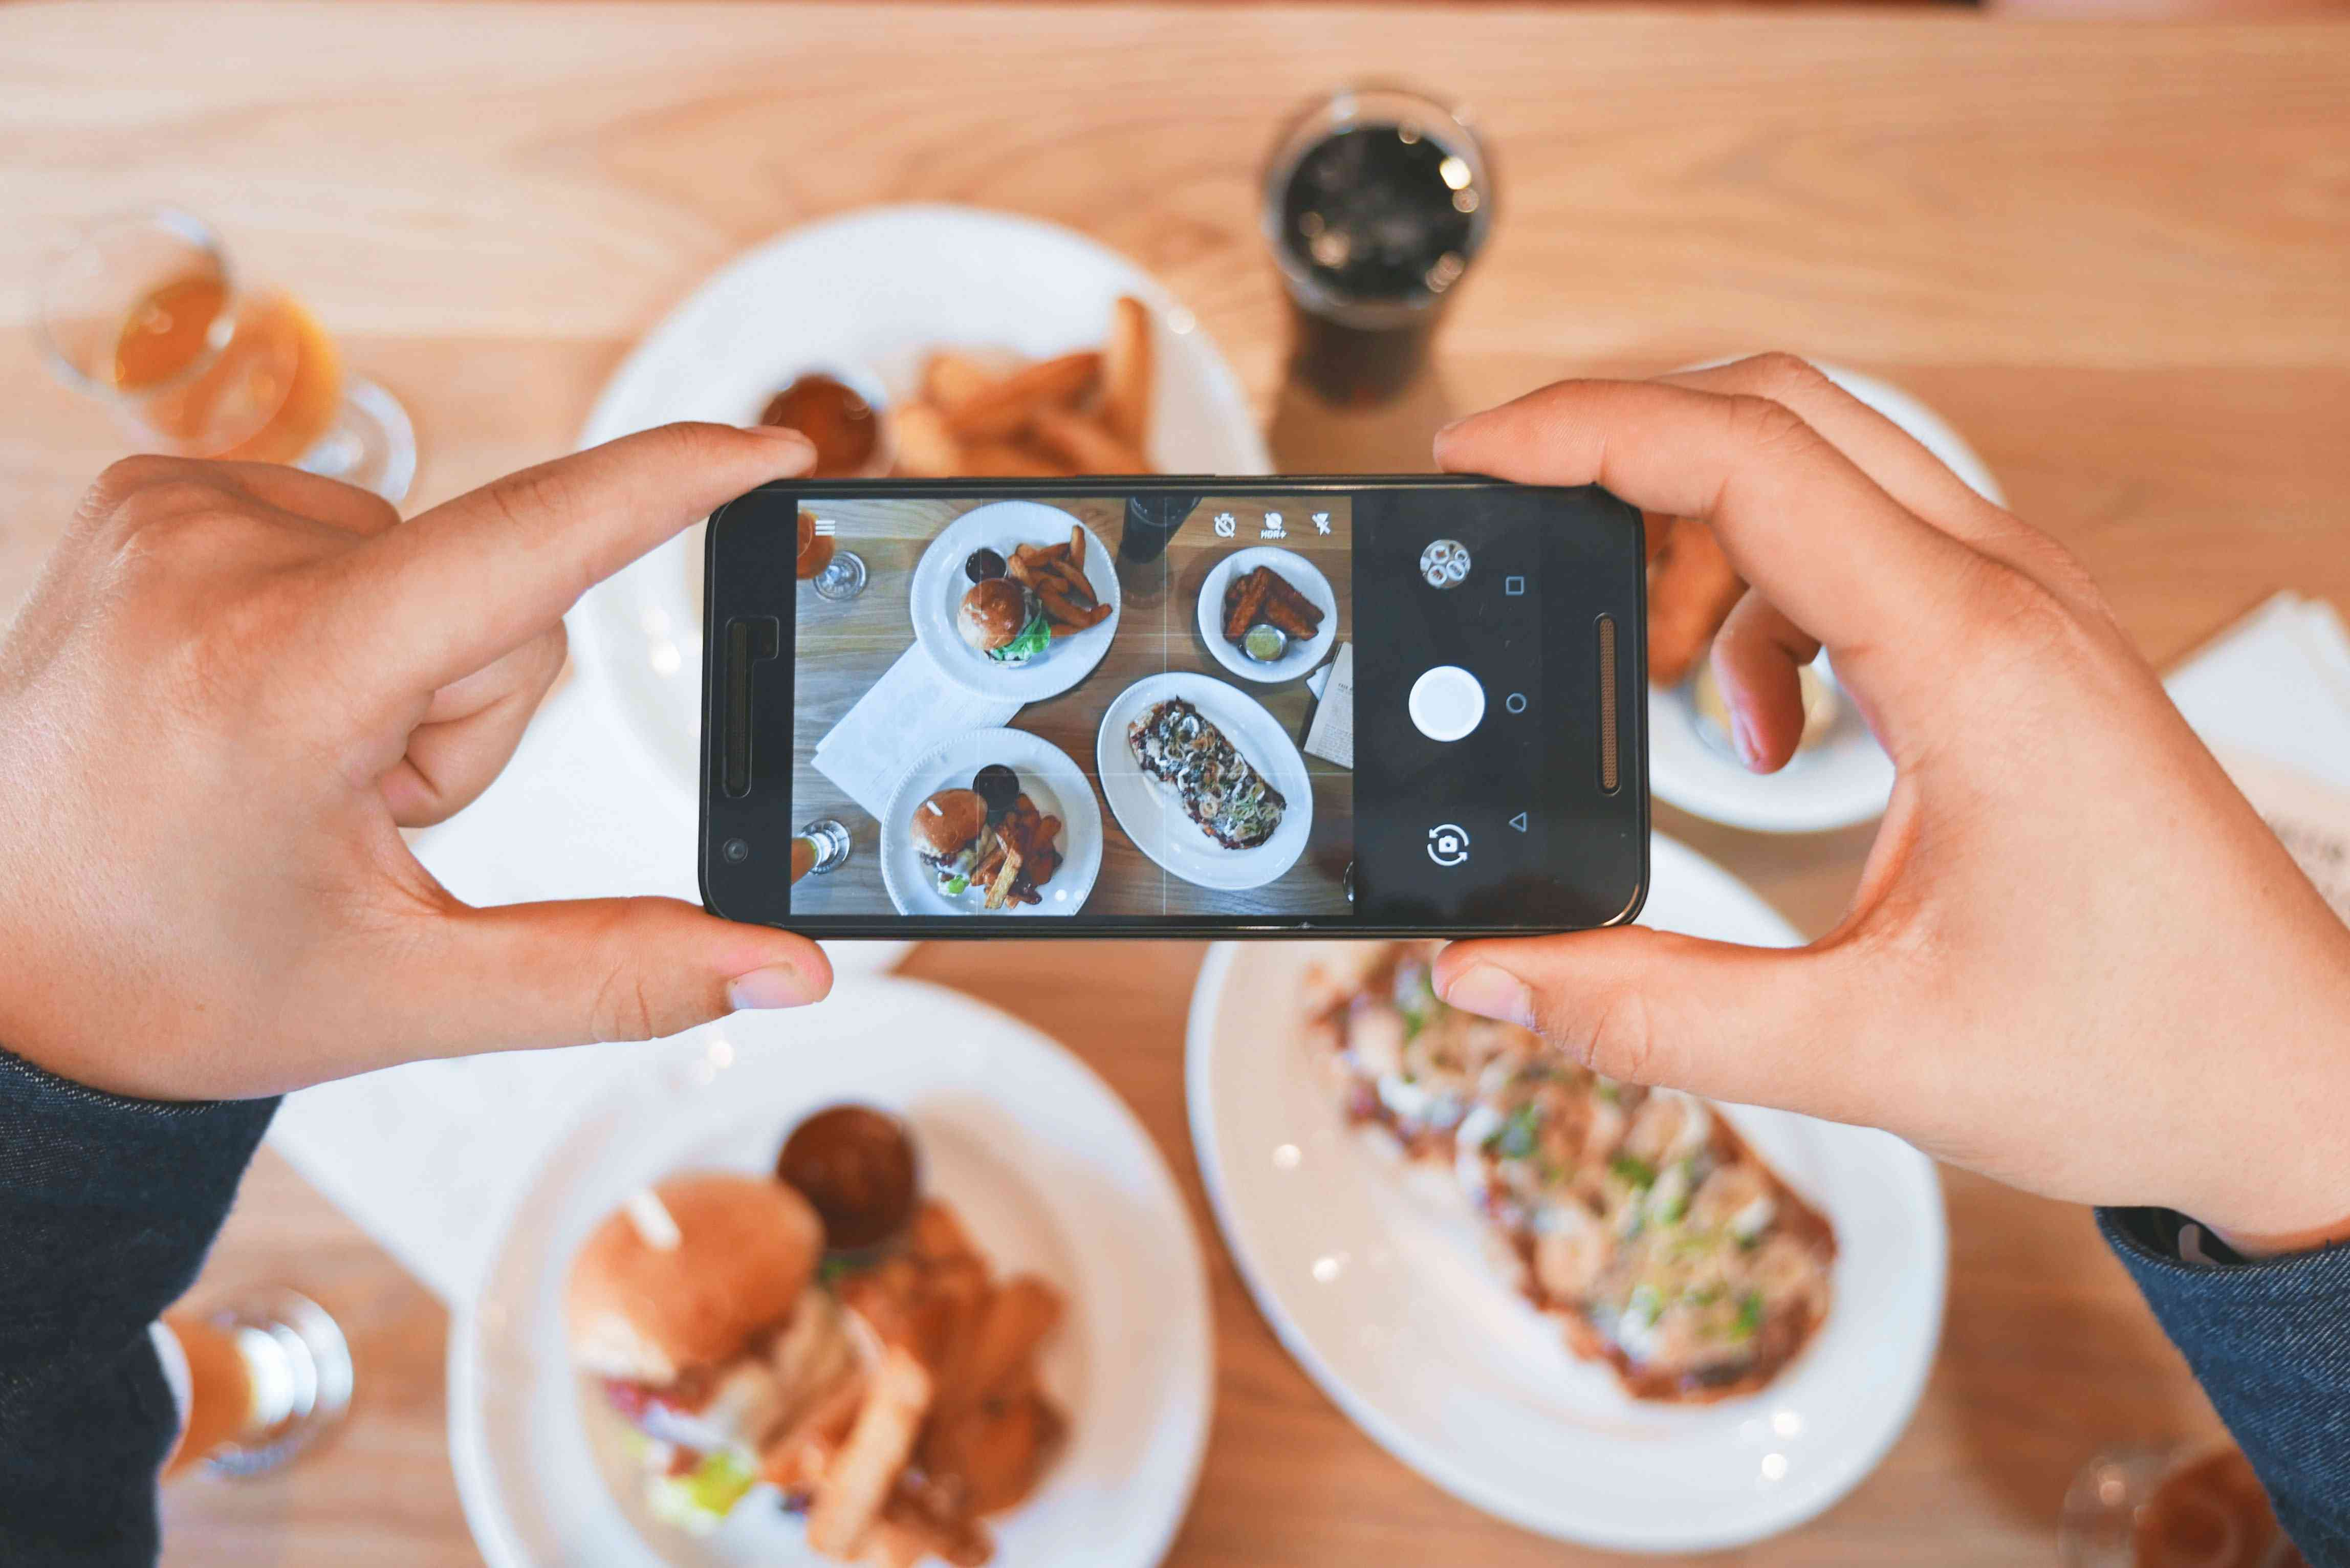 Someone taking pictures of their food with a smartphone.